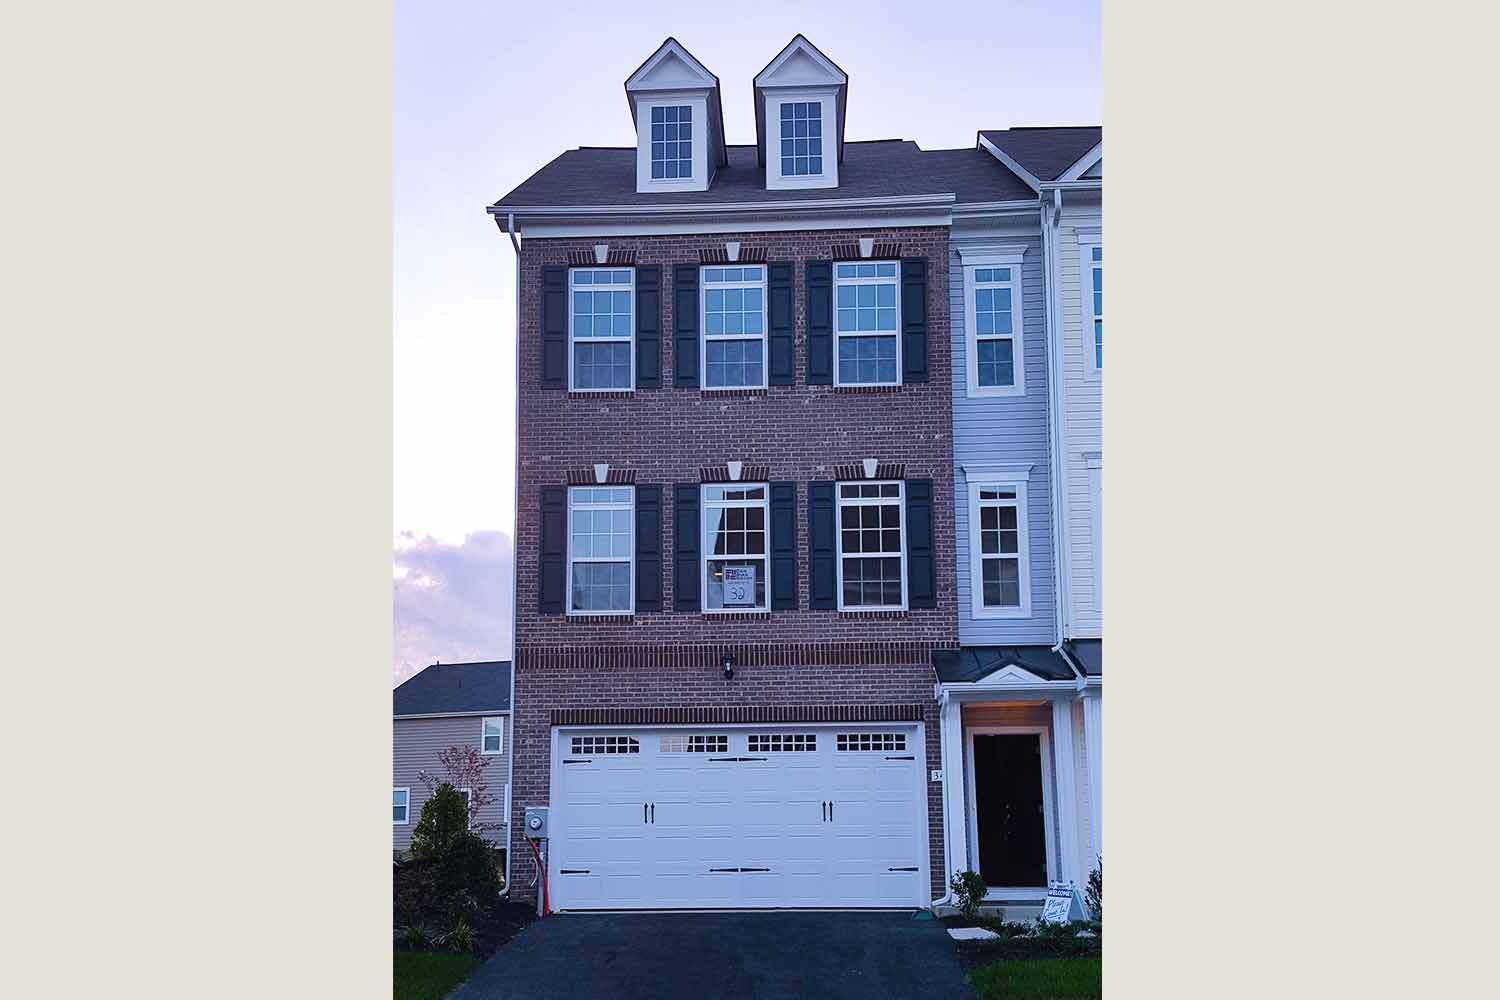 Real Estate at 3447 Flagstone Street, Waldorf in Charles County, MD 20601